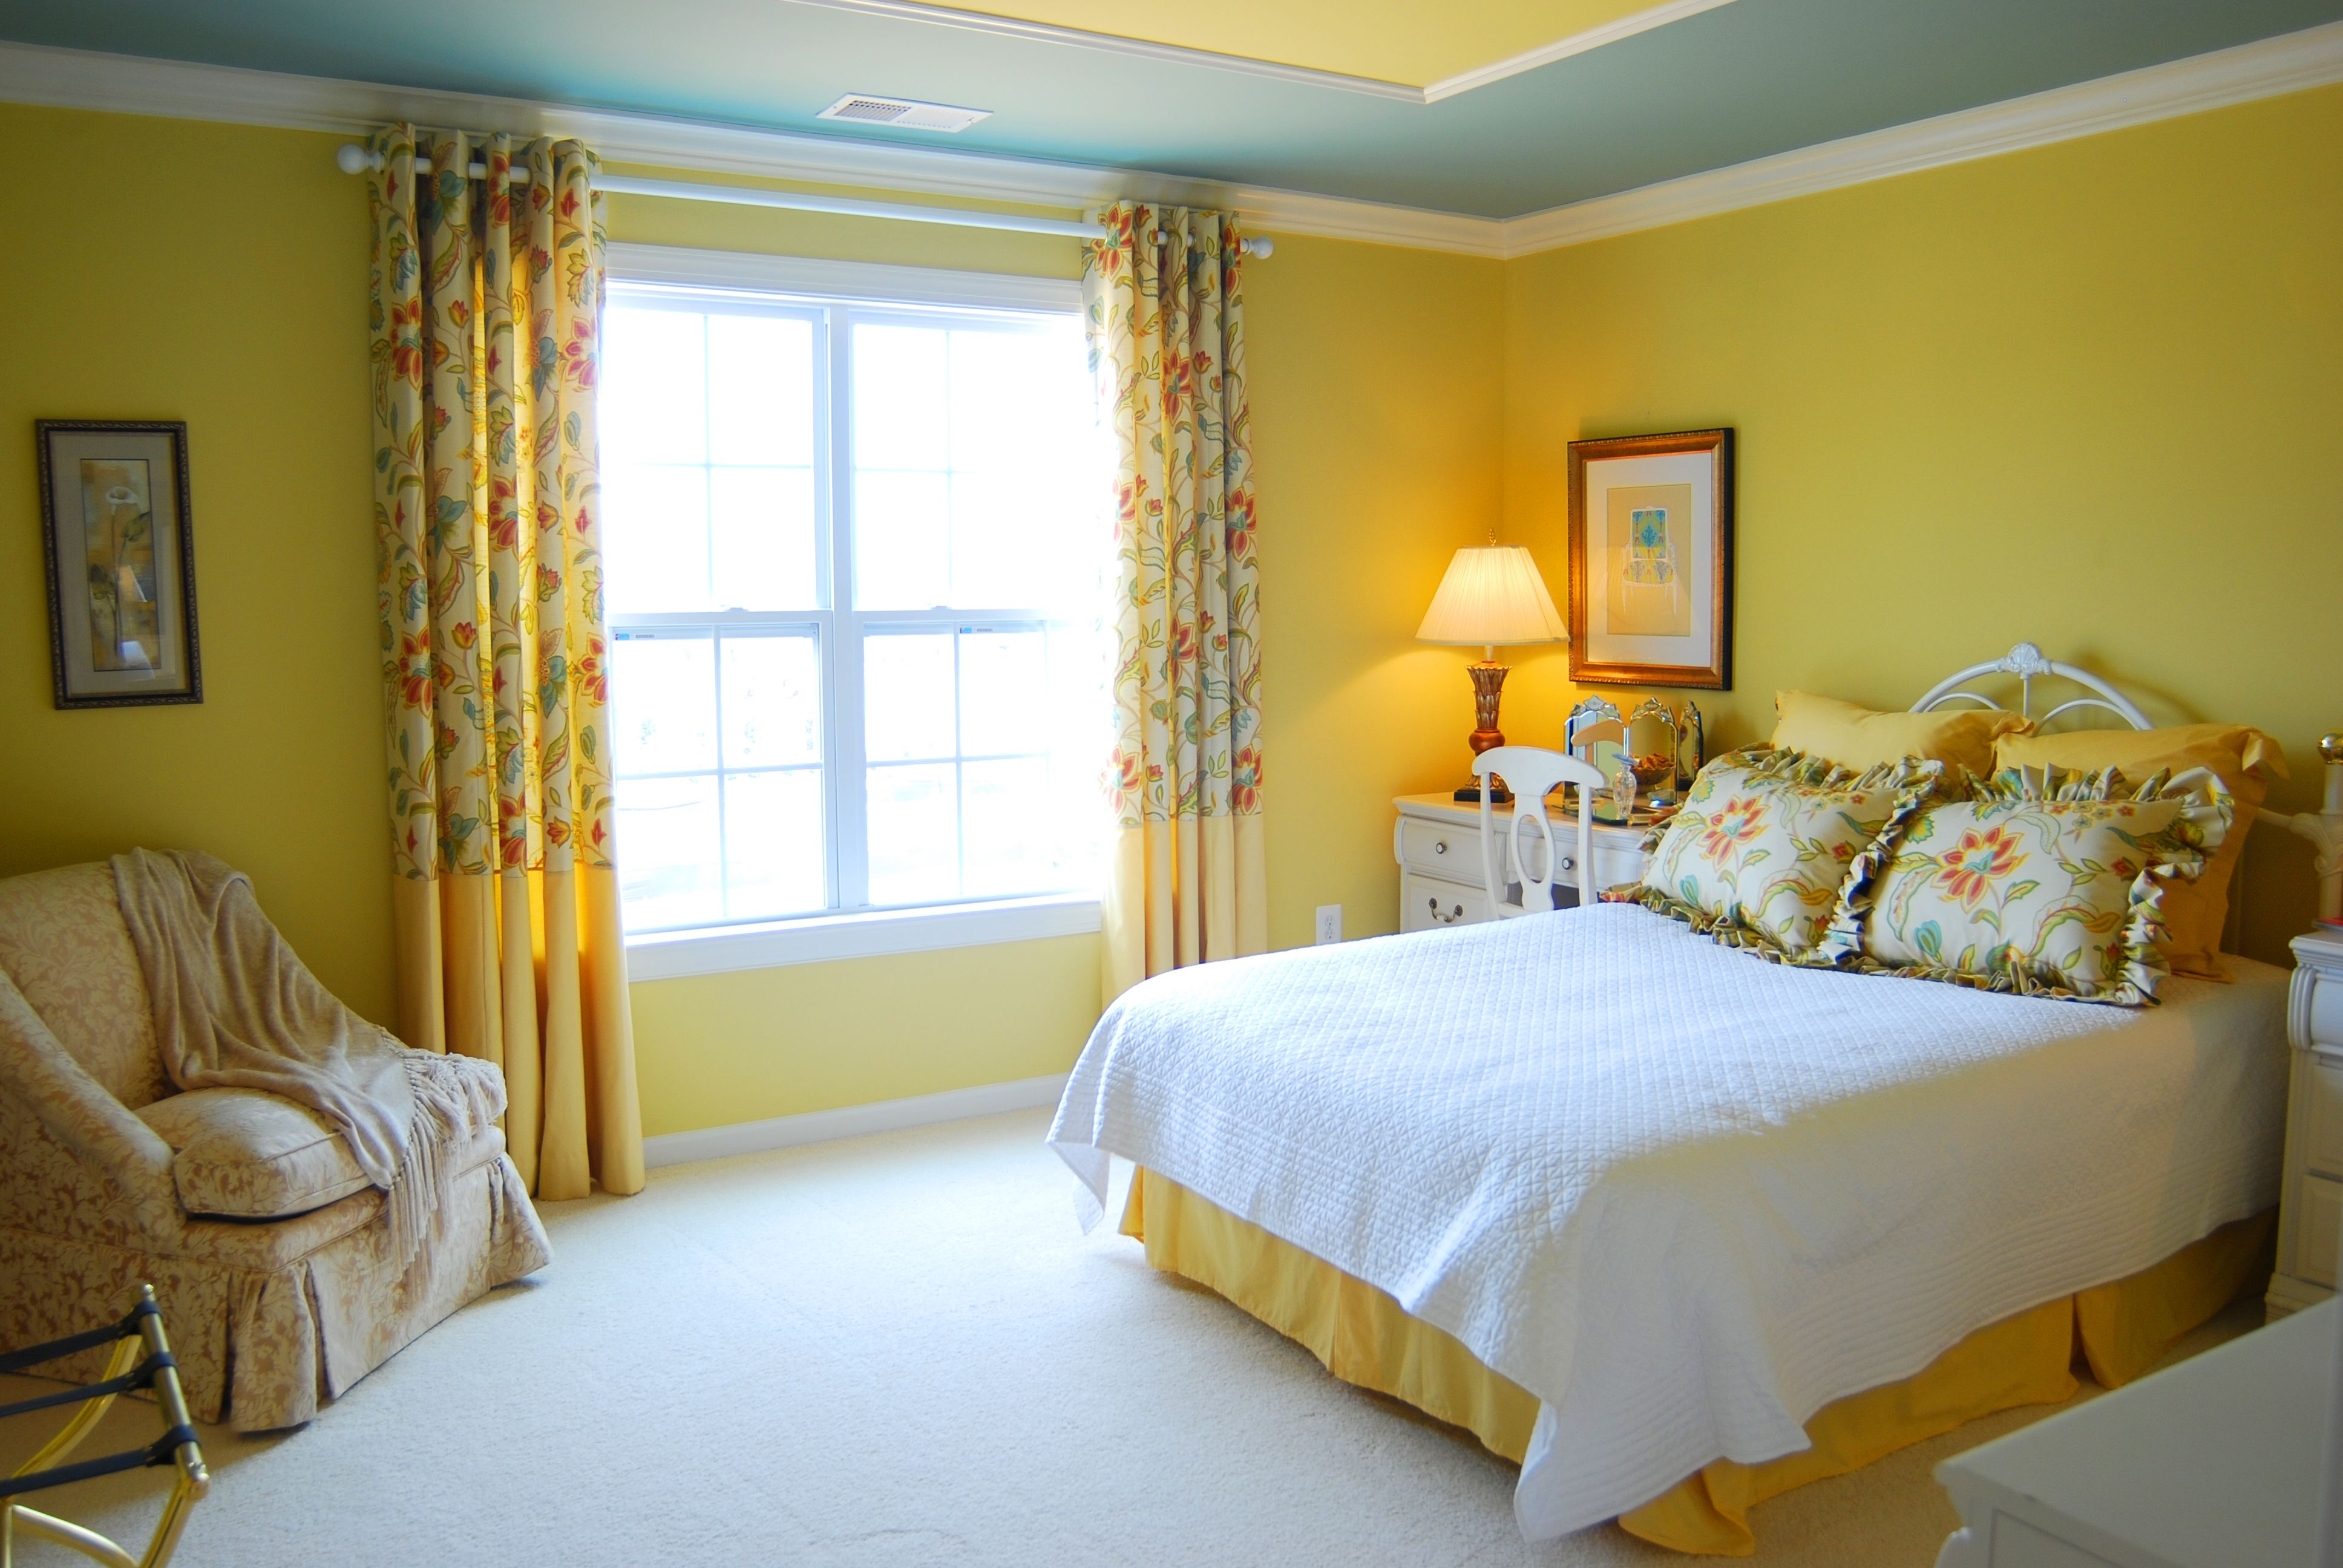 Catchy Yellow Teenage Girls Bedroom Paint Color Idea With Yellow White Bedding Set And White Beds Yellow Bedroom Paint Bedroom Wall Colors Bedroom Paint Colors